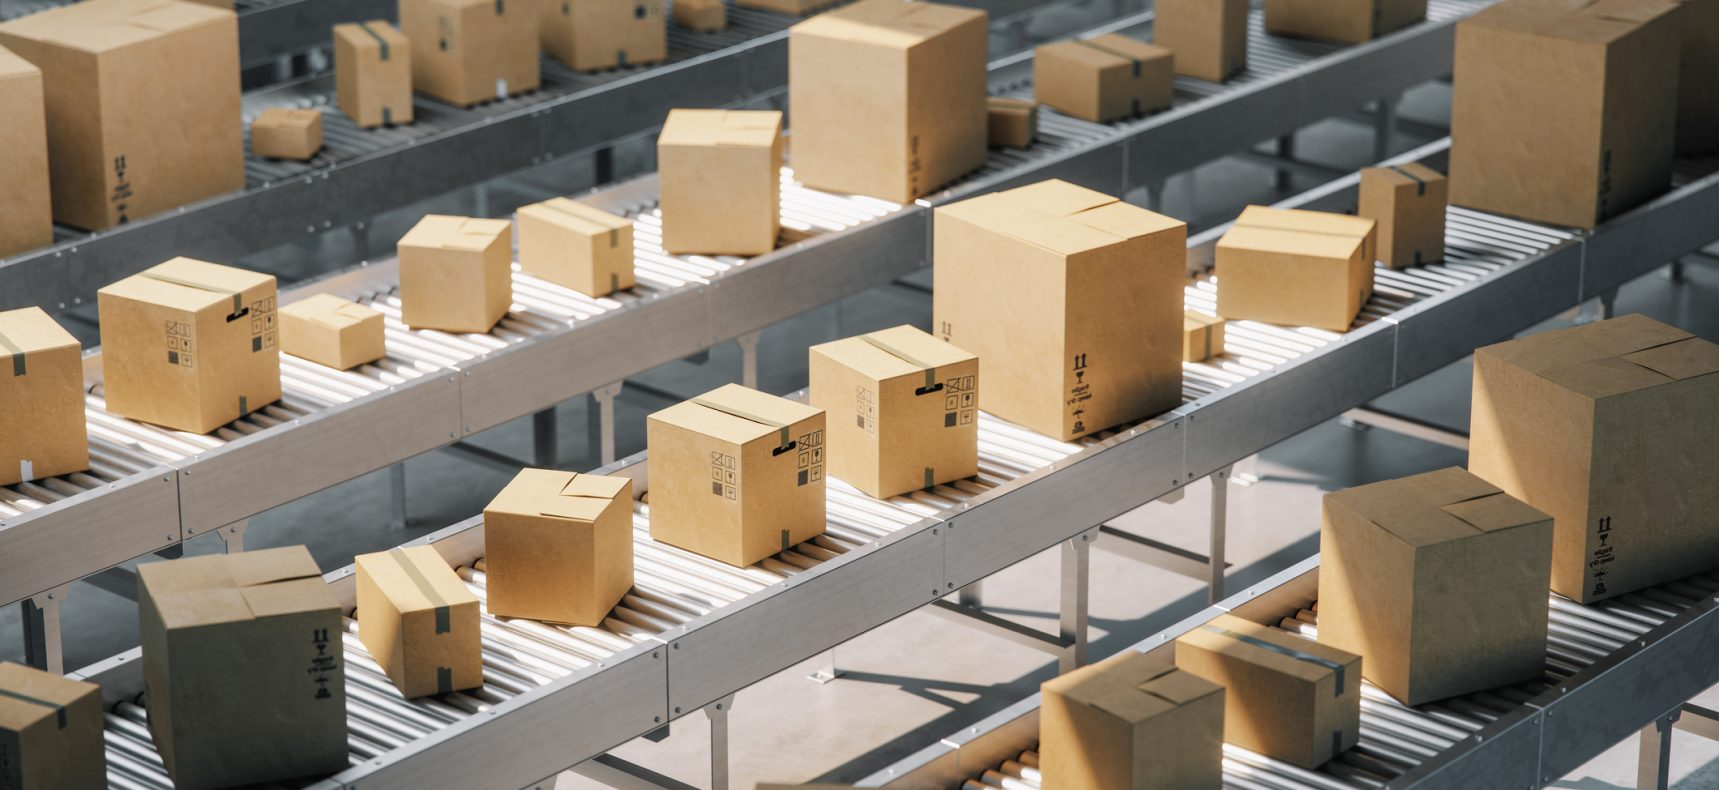 Cardboard boxes on conveyor belt in a distribution warehouse.